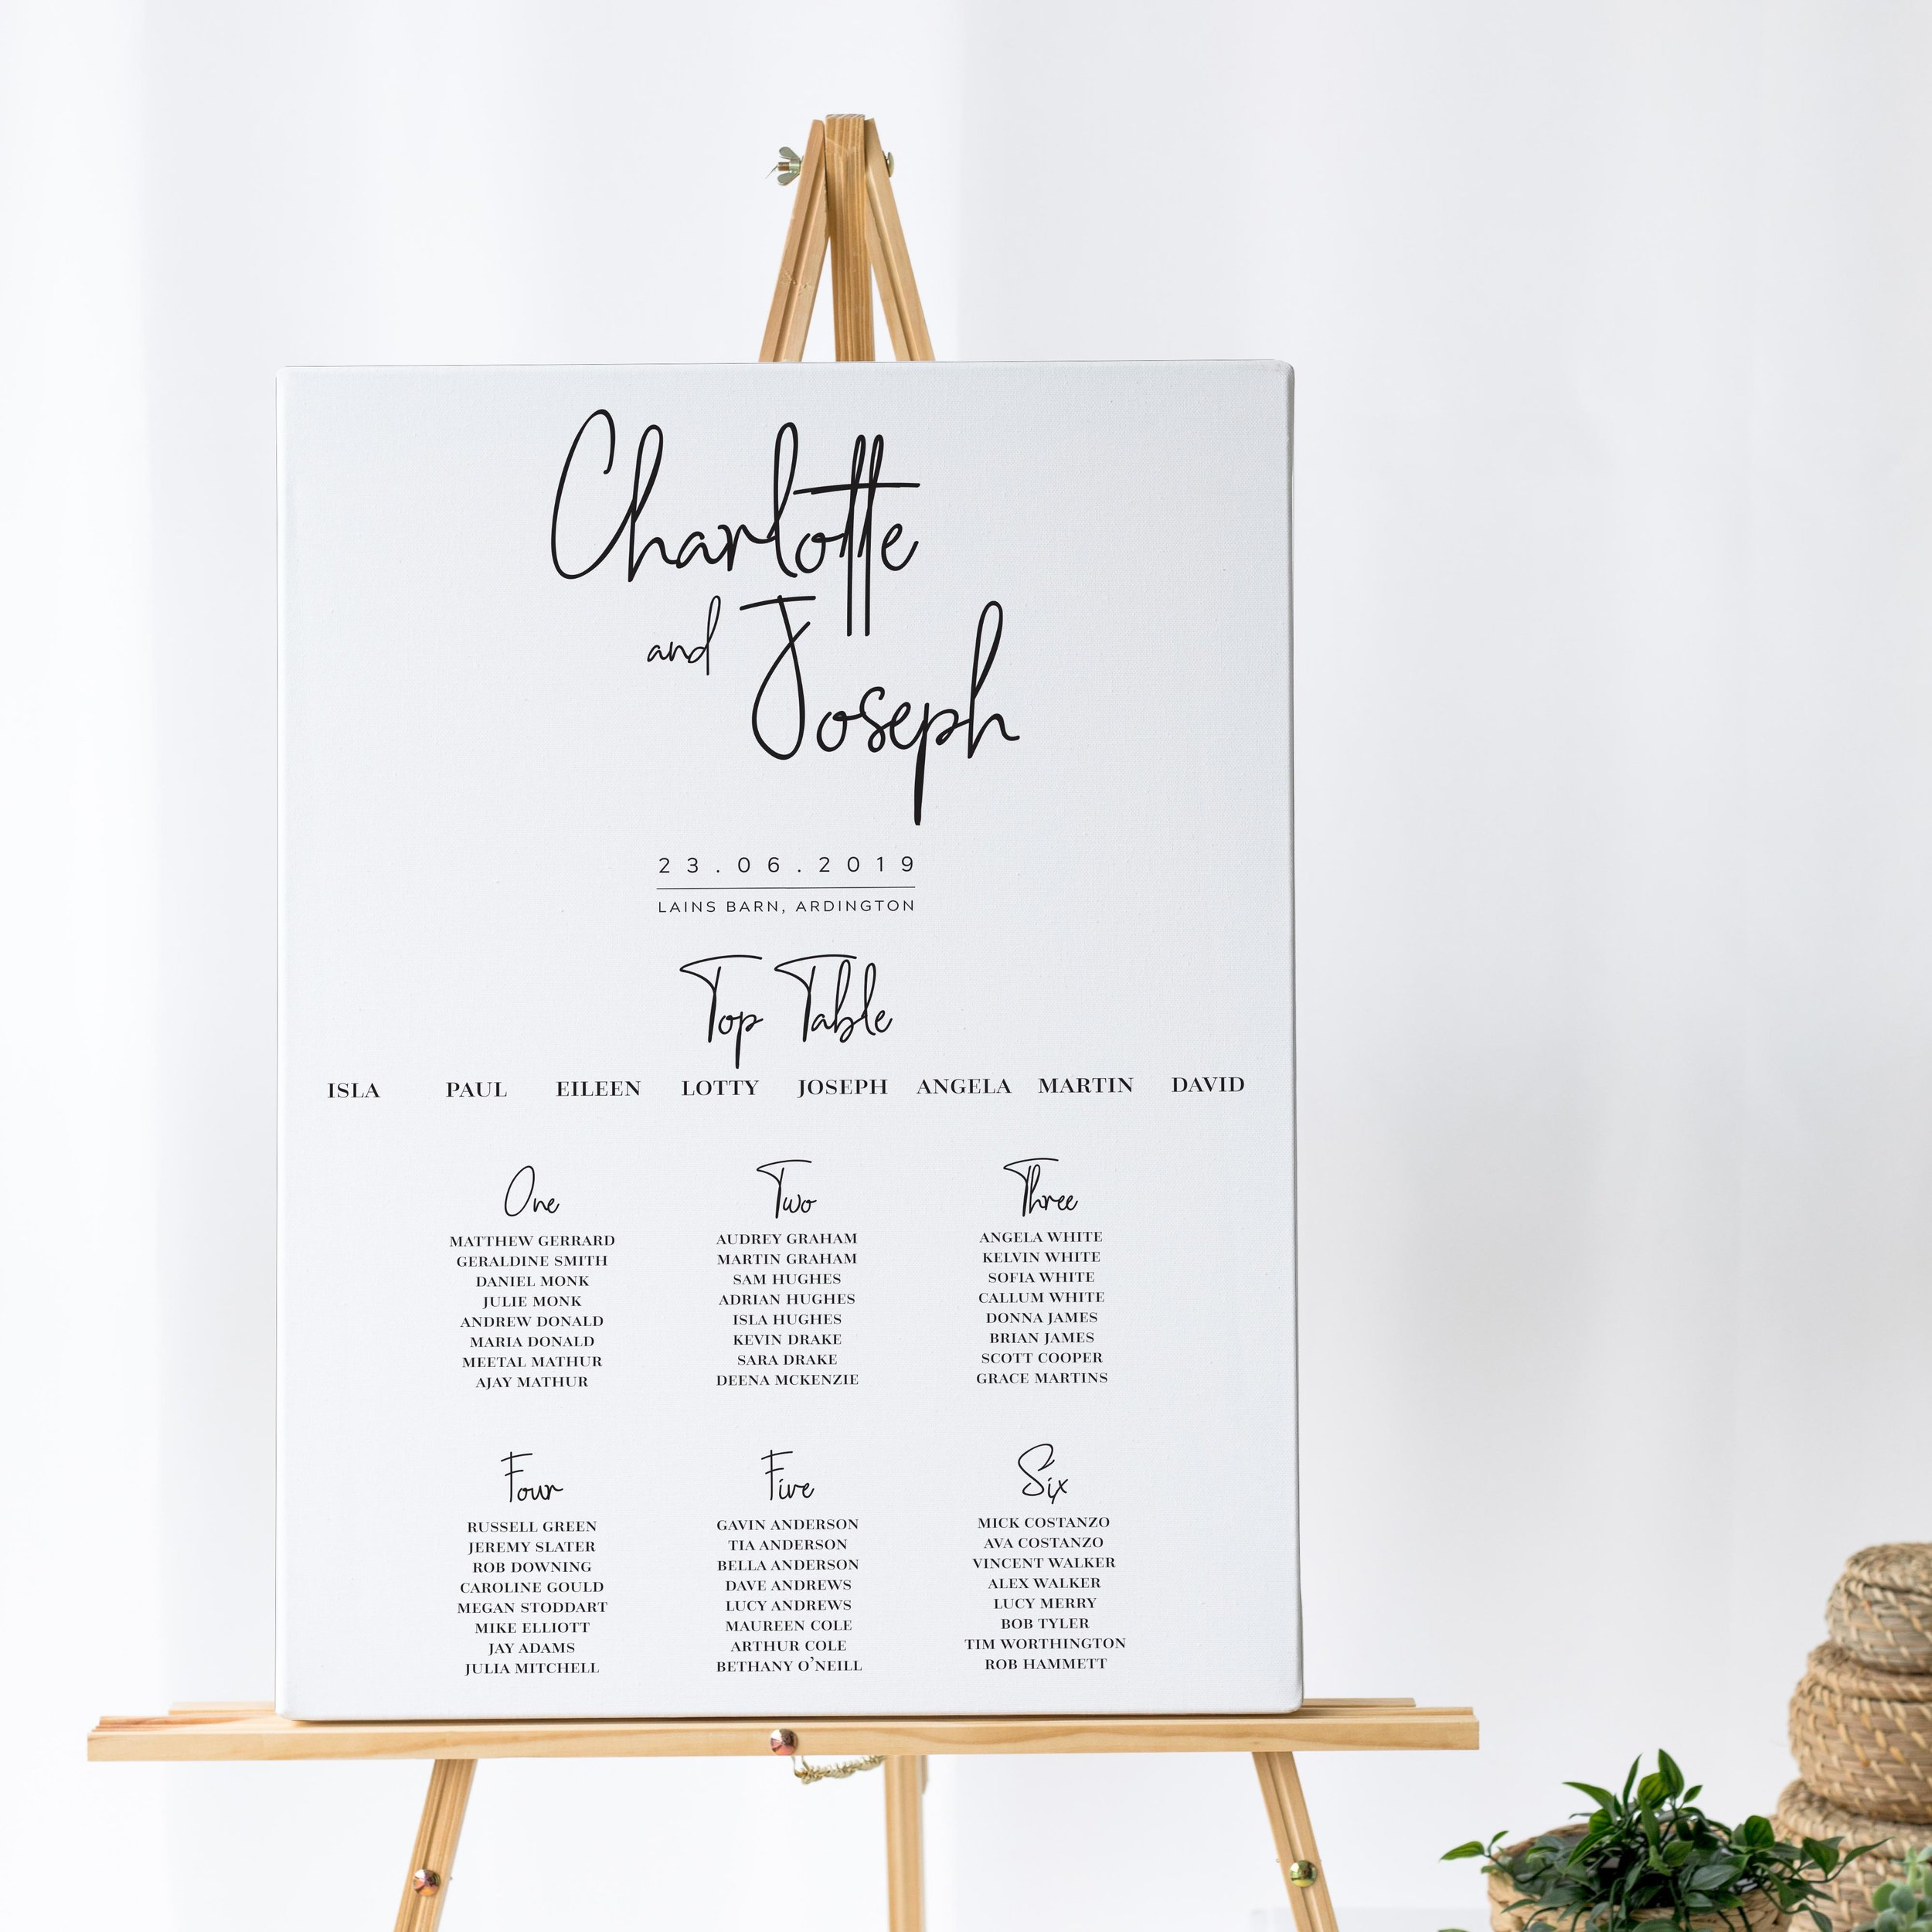 Chancery Lane - A striking handwritten typeface takes centre stage on this modern Table Plan from our Chancery Lane collection - offering a clean and simple style for the contemporary wedding day.Our table plans are printed on one of two base options, including waterproof foamex, and can be combined with a matching welcome sign and / or order of the day for a discounted rate.The layout is customisable and all orders include one-on-one design with a comprehensive proofing process to ensure accuracy.